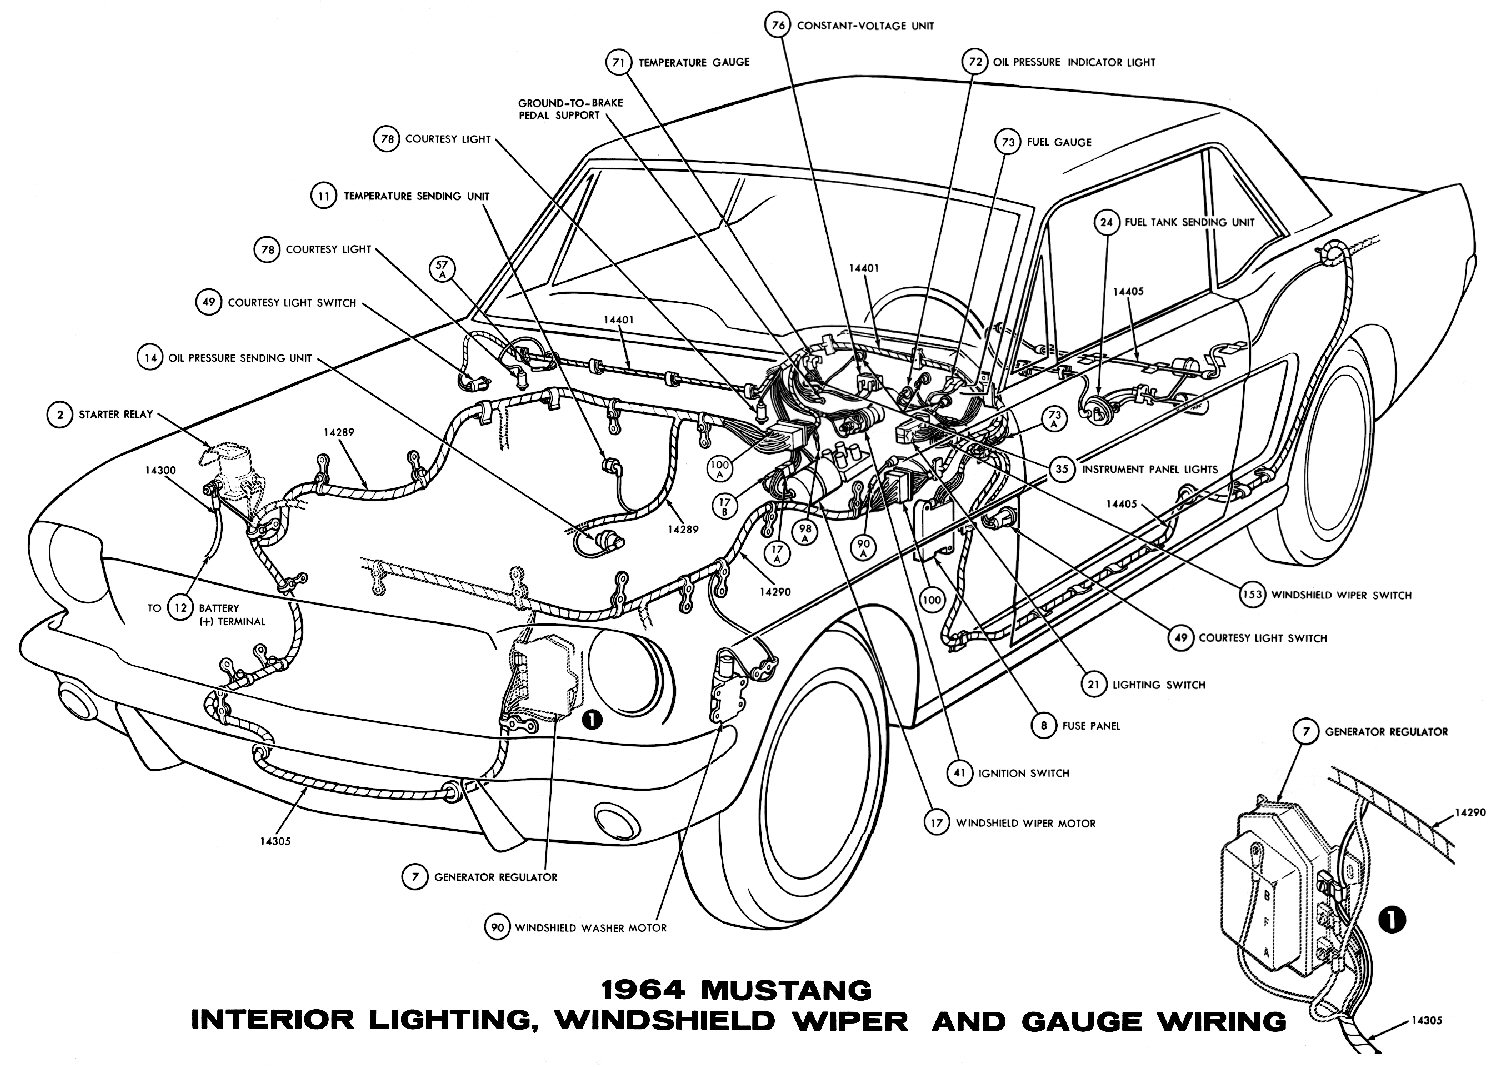 1964 Mustang Wiring Diagrams Average Joe Restoration 24 Volt Voltage Regulator Diagram Sm1964j